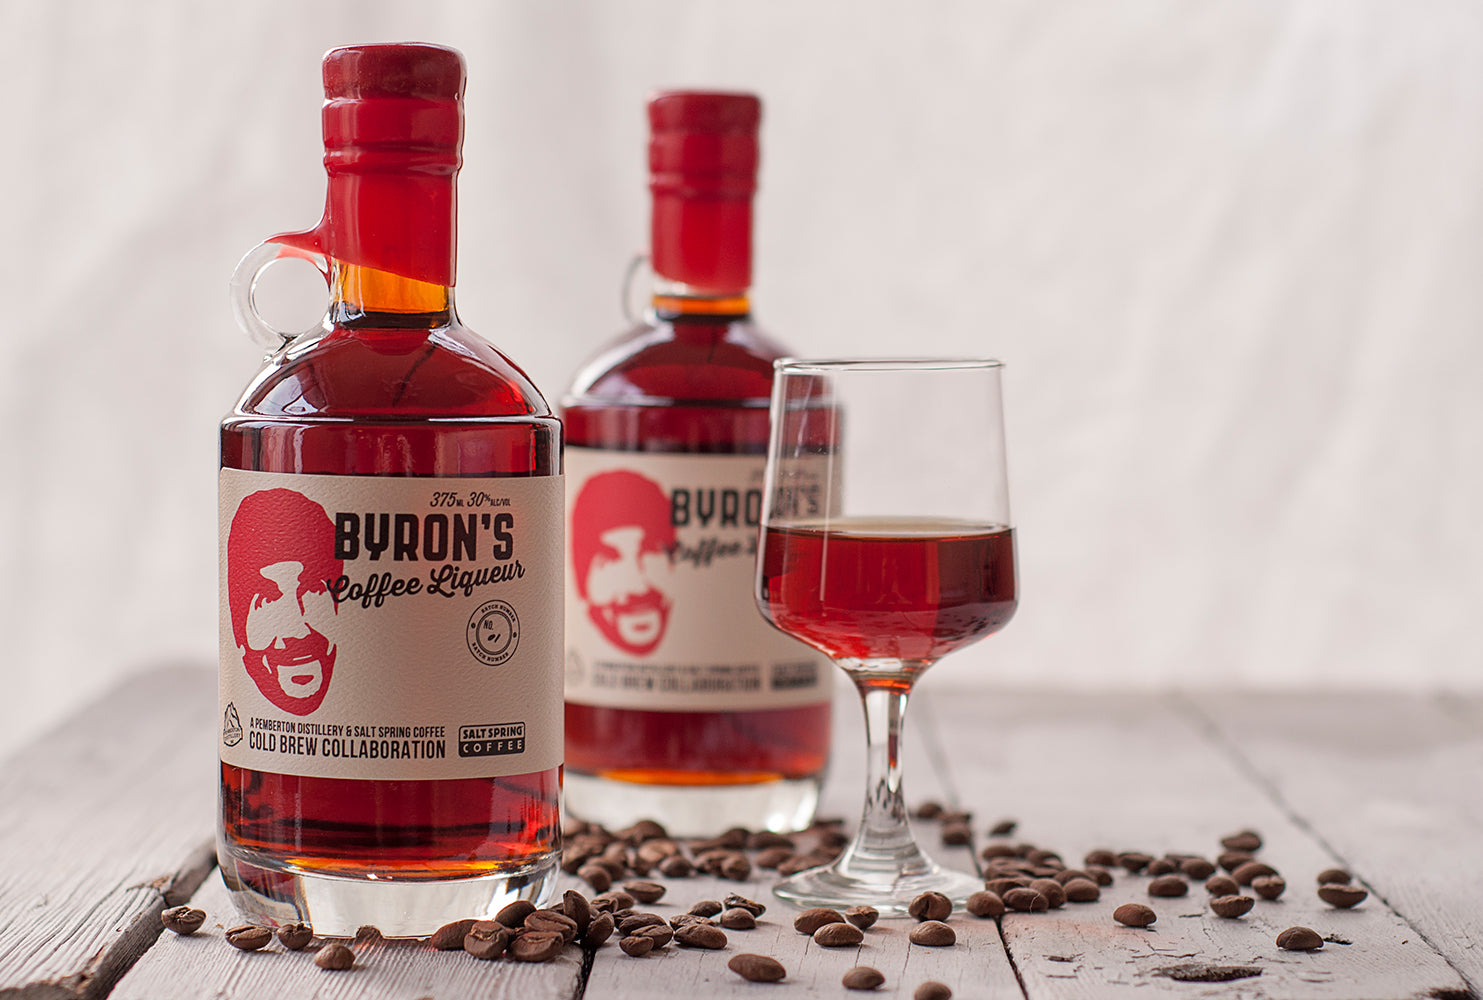 Meet Byron's Organic Coffee Liqueur